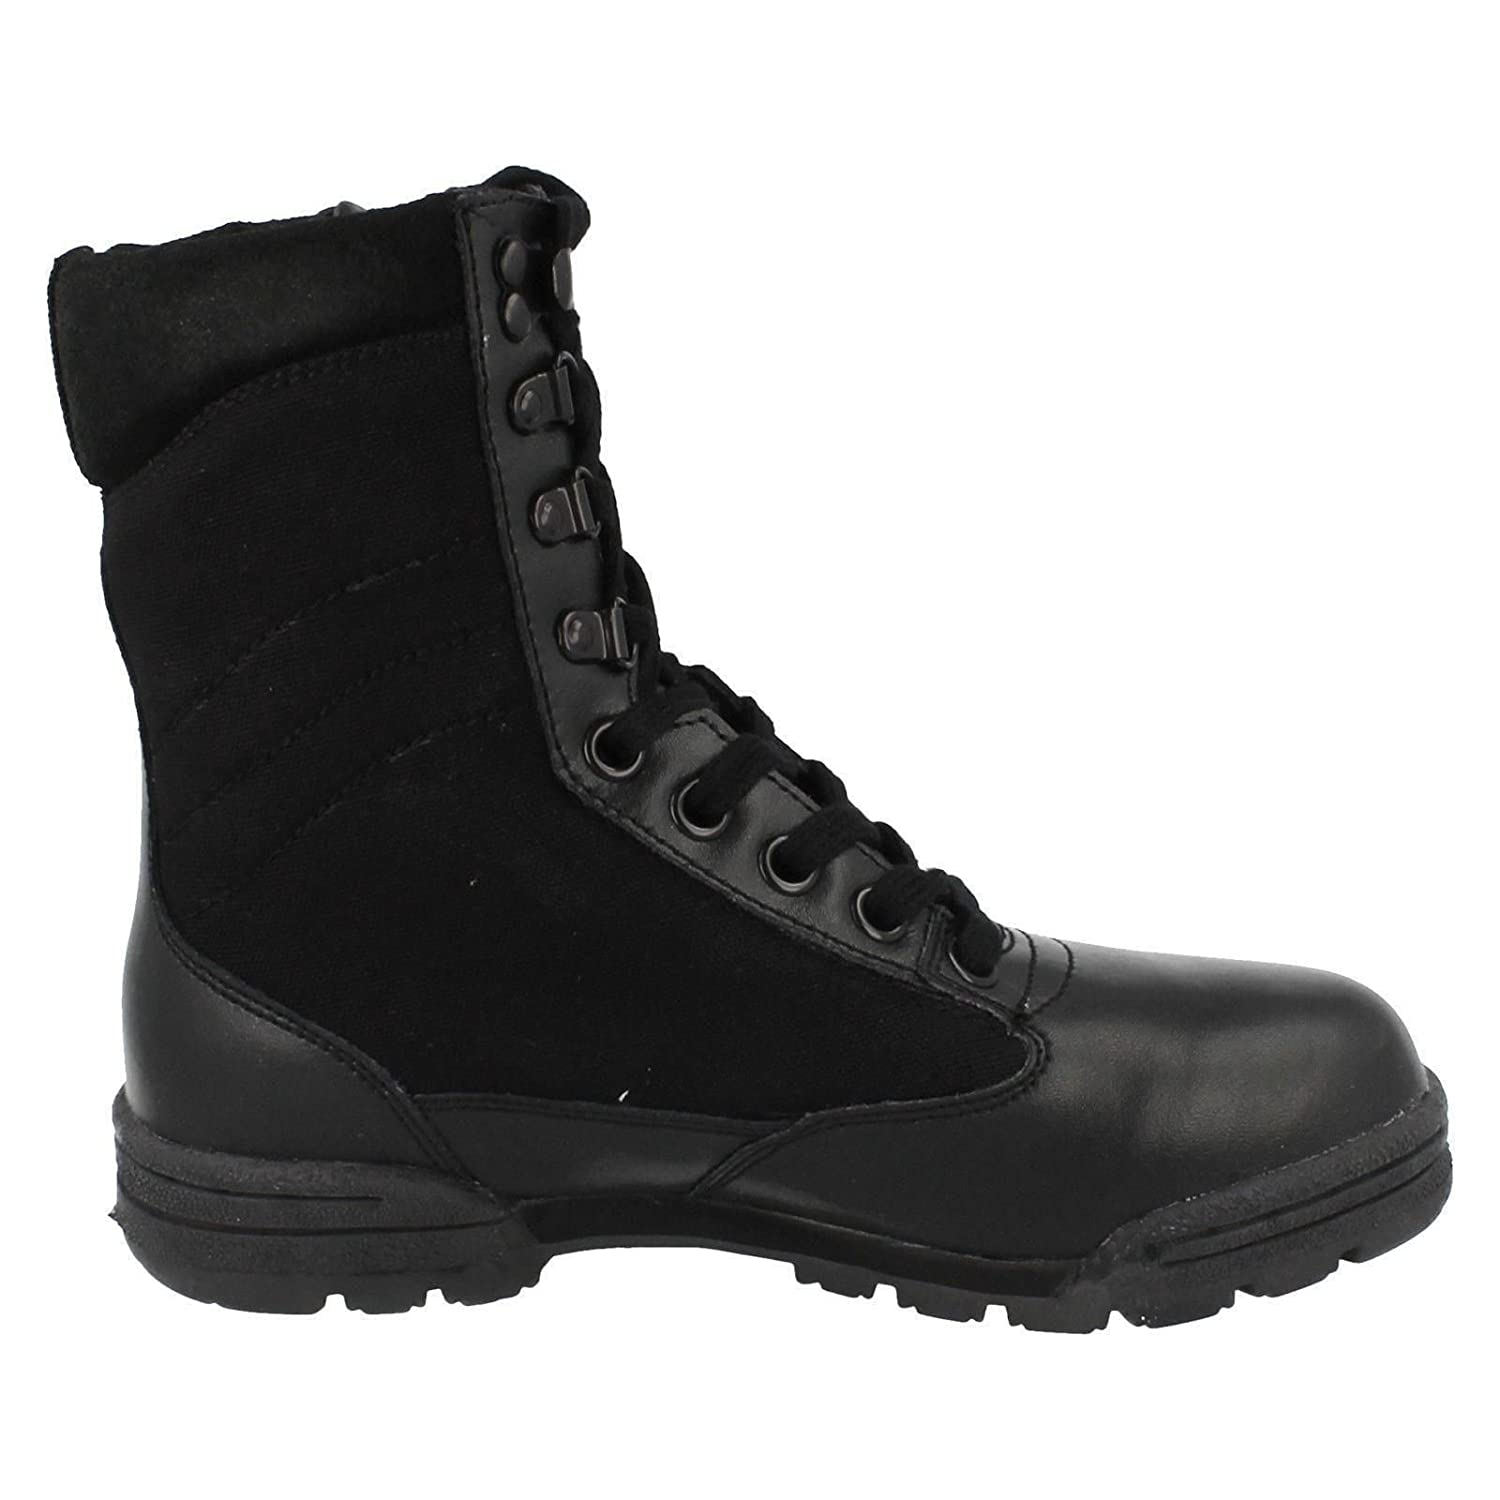 Mens Truka Leather And Nylon Lace Up Combat Boot - Combat RG-1080:  Amazon.co.uk: Shoes & Bags